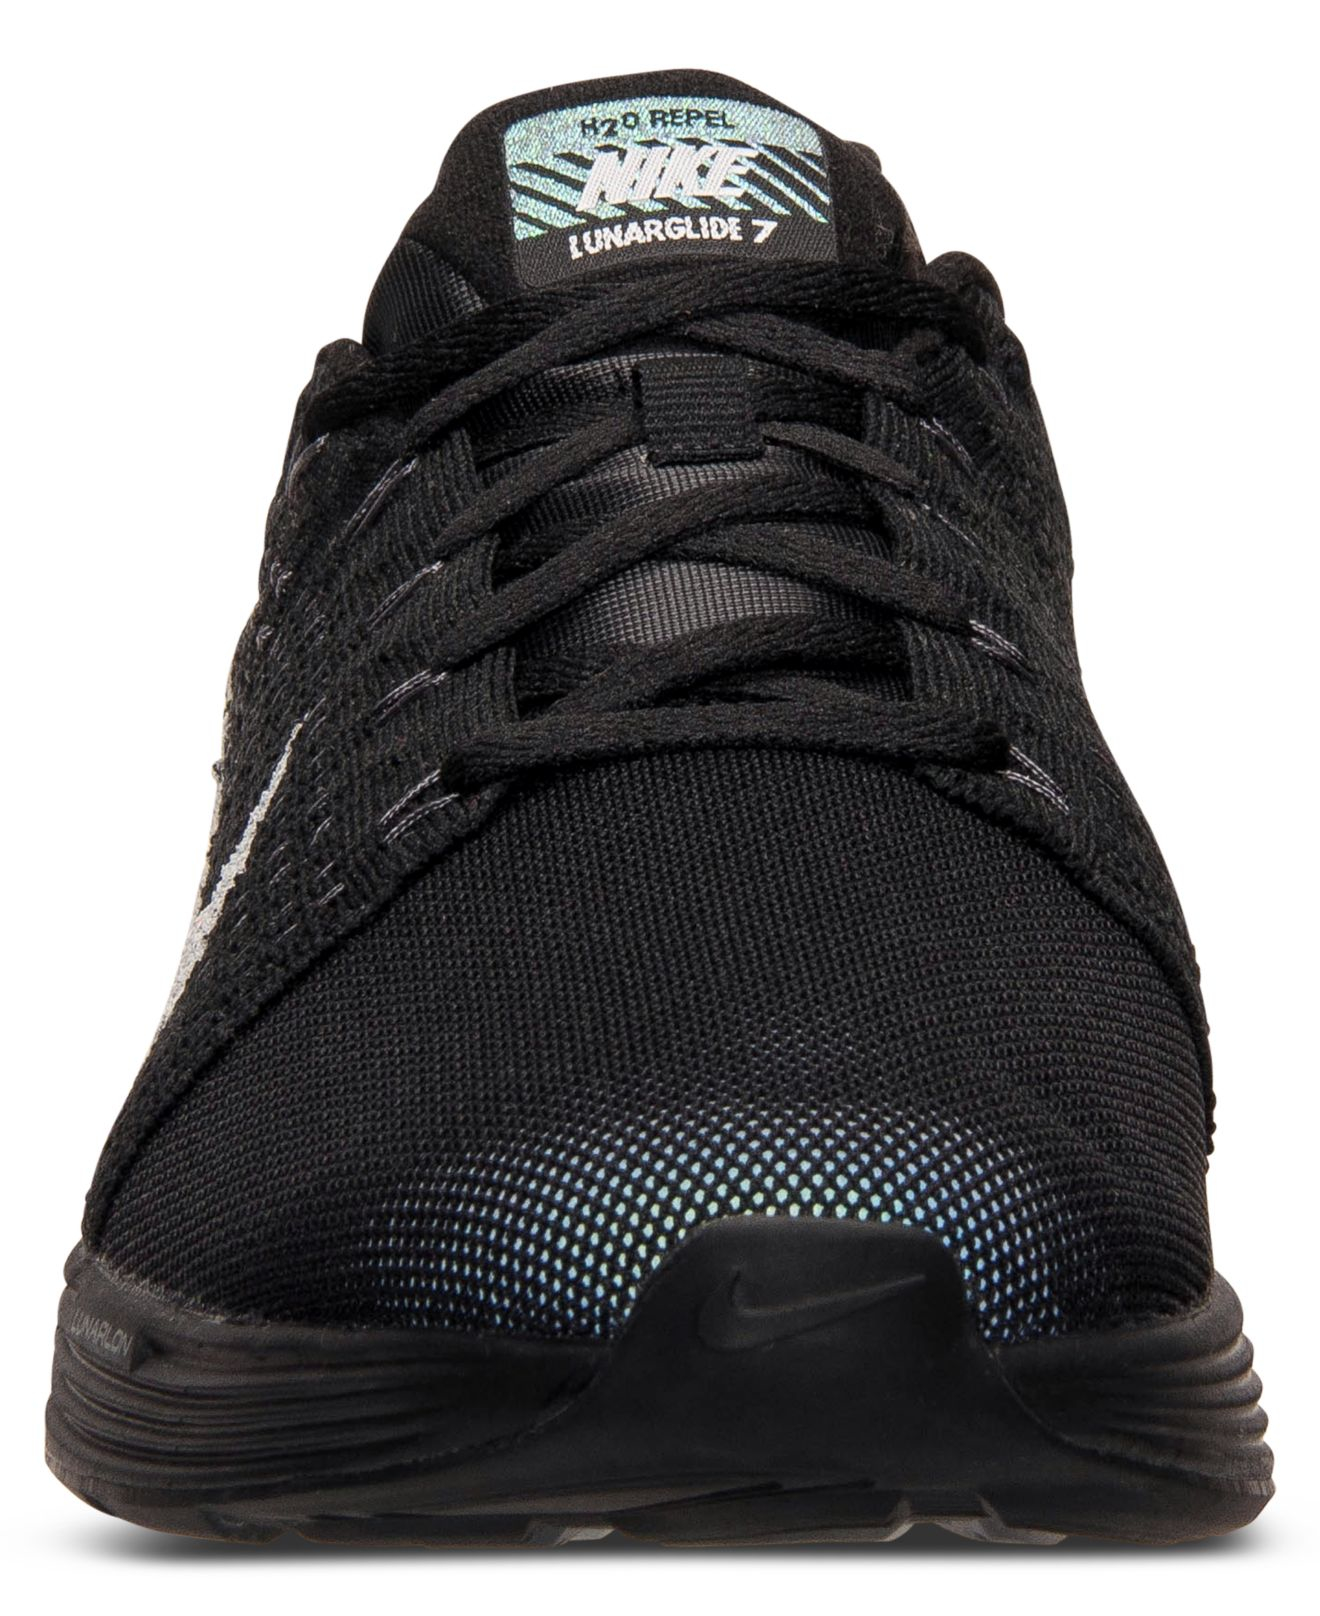 Lyst - Nike Men s Lunarglide 7 Flash Running Sneakers From Finish ... 6dd1efca6337